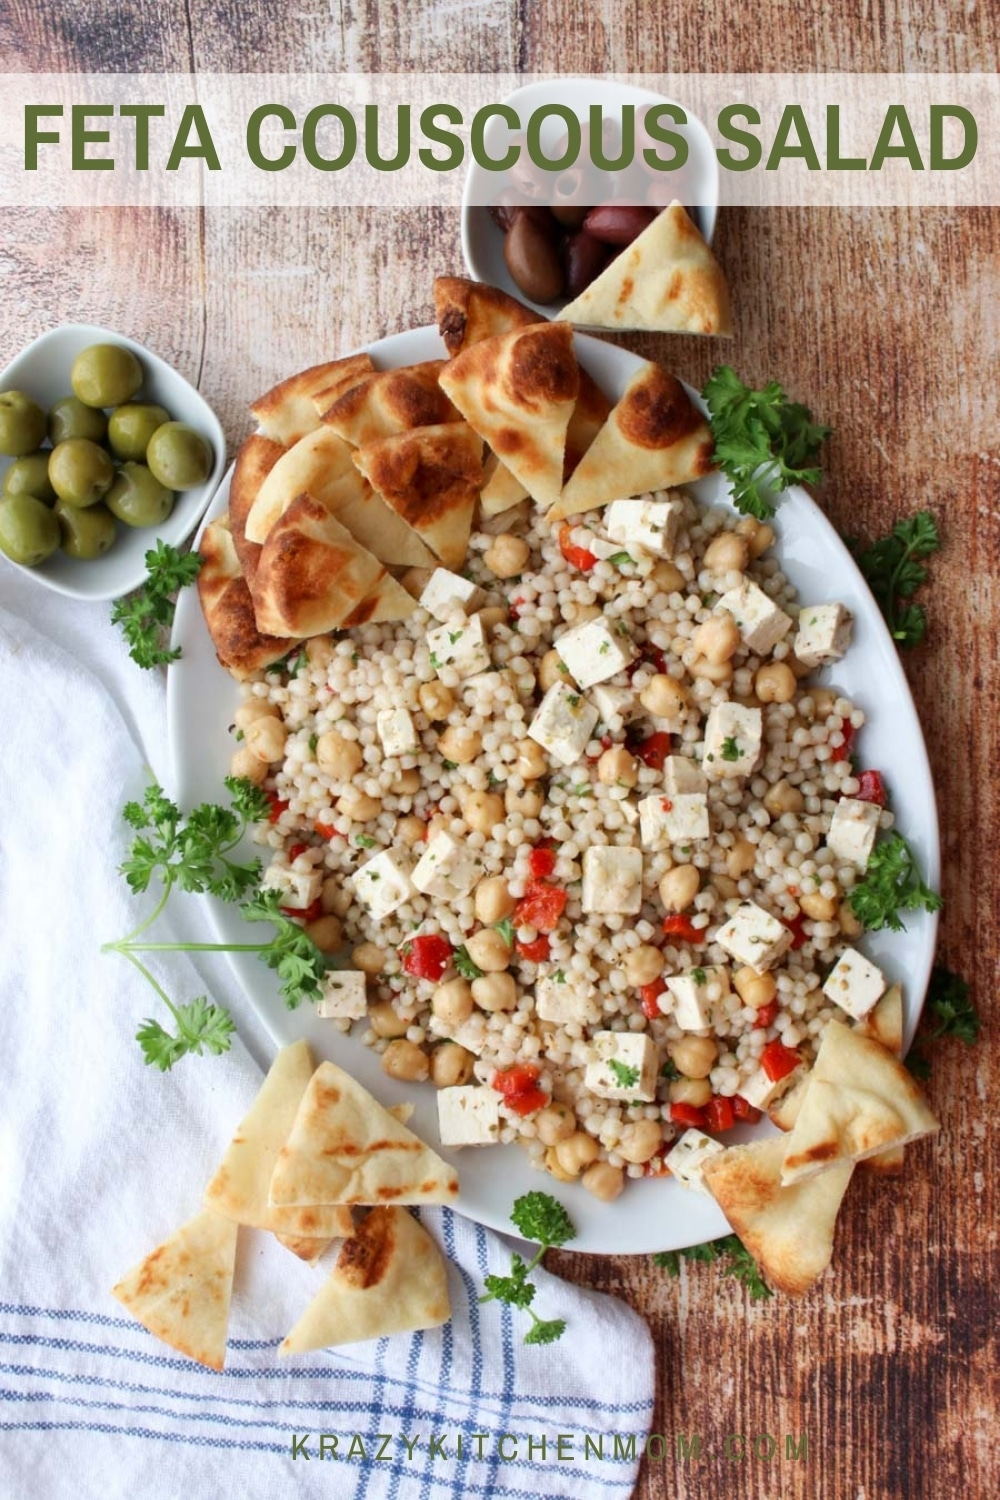 Mediterranean Feta Couscous Salad is the perfect blend of flavors with bold spices and a tangy vinaigrette.  via @krazykitchenmom